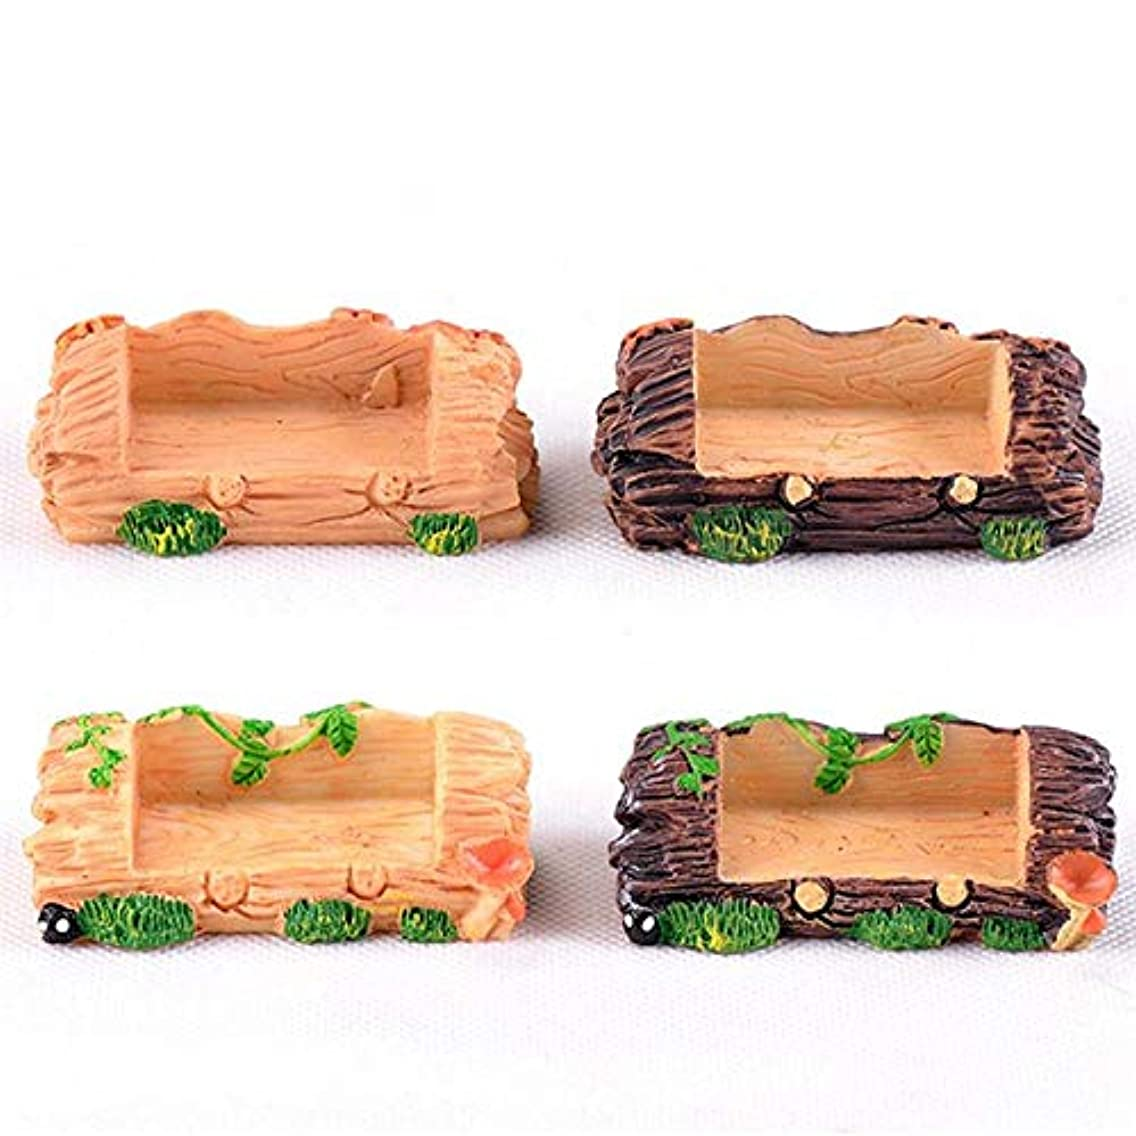 Creative Resin Double Seat Wooden Stool Ornaments DIY Moss Micro Landscape World Ornament Decoration Random